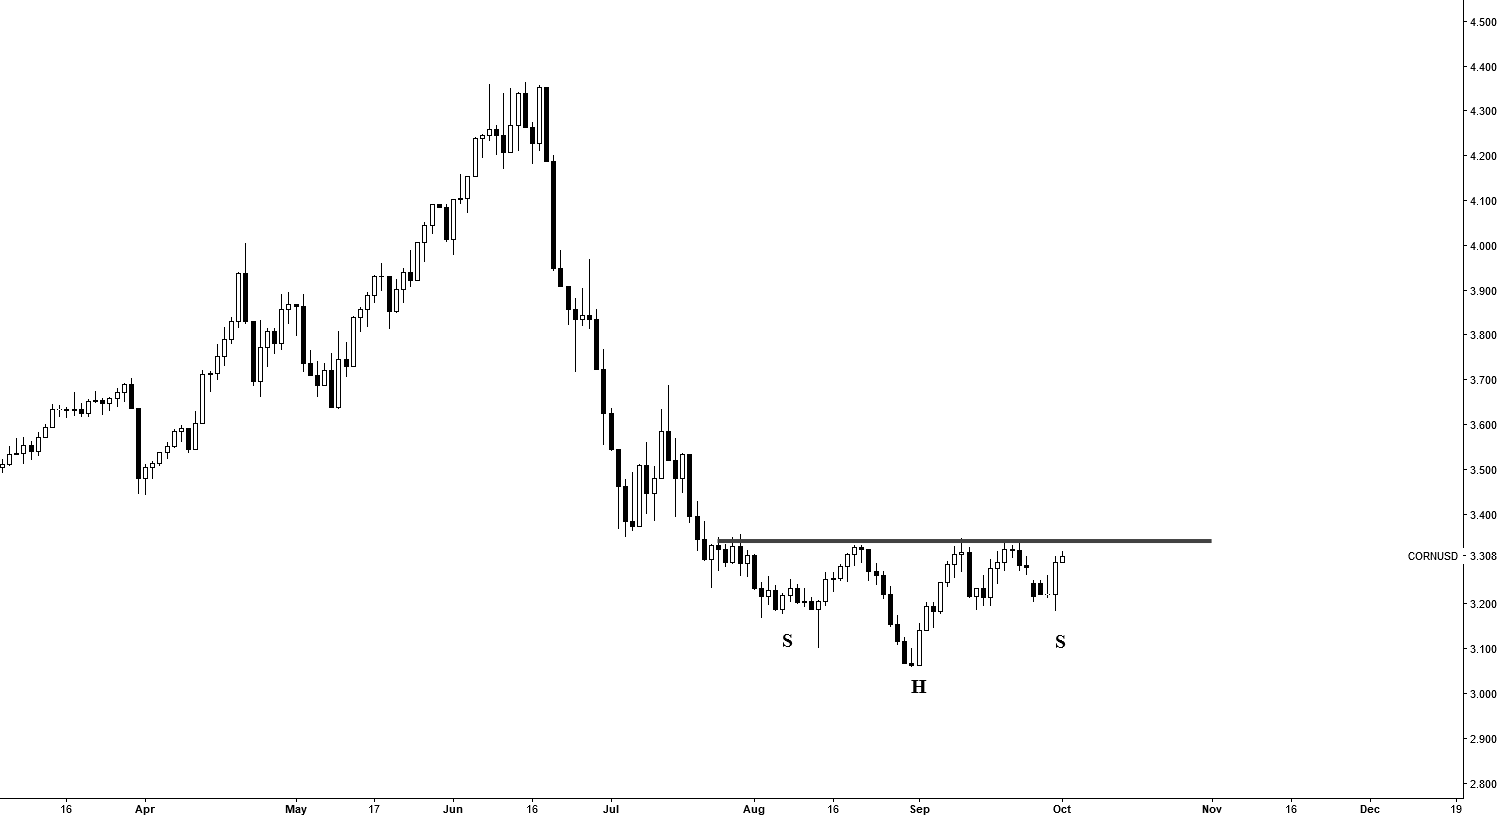 Corn Head & Shoulder Bottom Looks supported